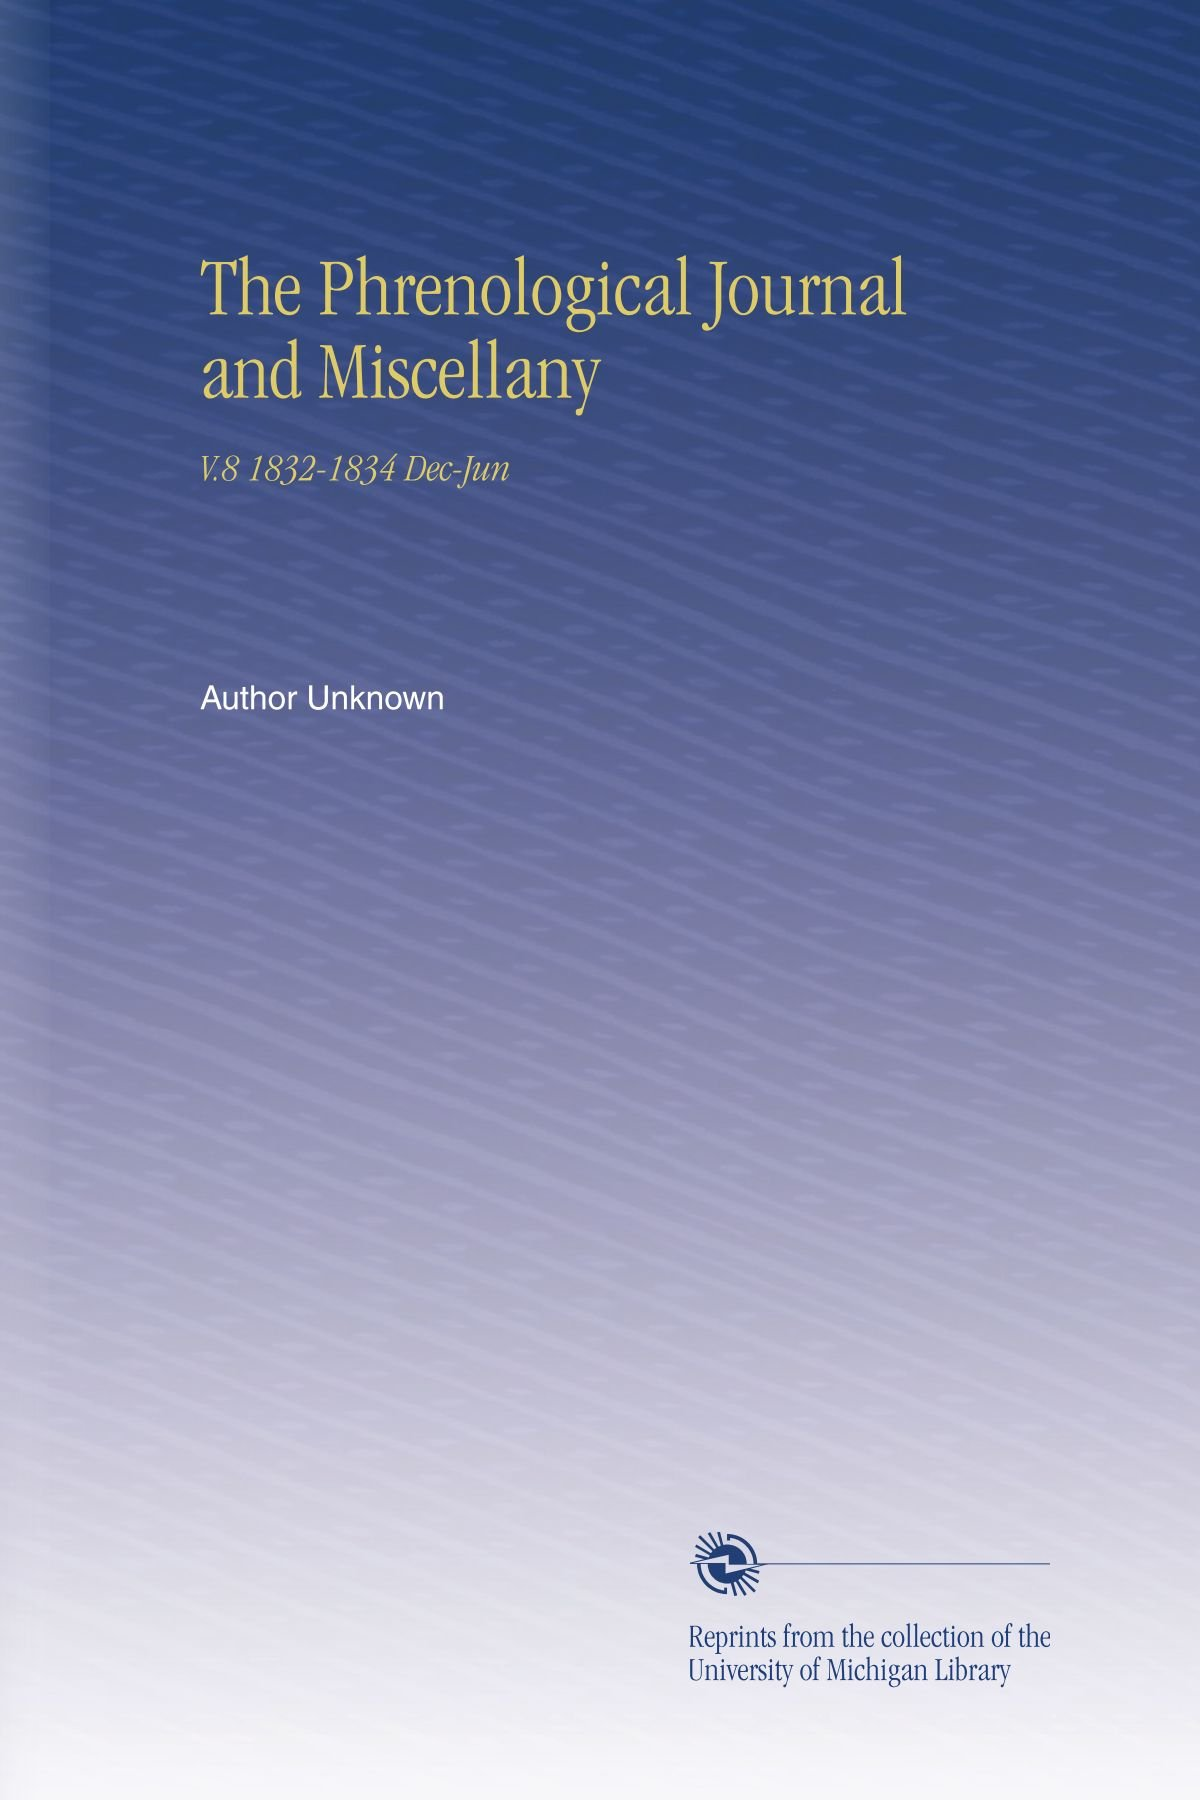 Download The Phrenological Journal and Miscellany: V.8 1832-1834 Dec-Jun ebook